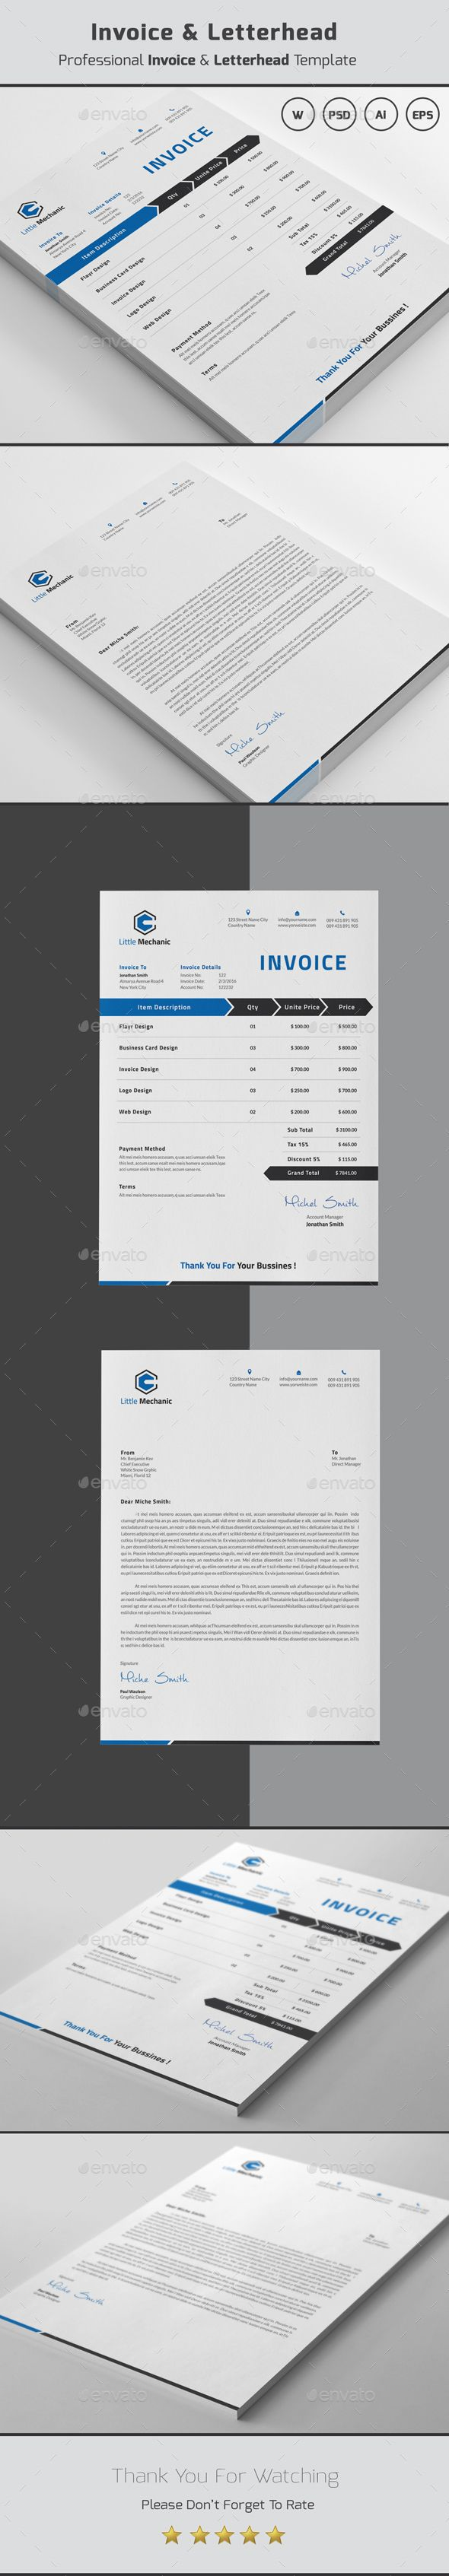 Company Invoice & Letterhead Template - #Invoice #Letterhead #Stationery Print Template. Download here: https://graphicriver.net/item/invoice-letterhead/19450591?ref=yinkira